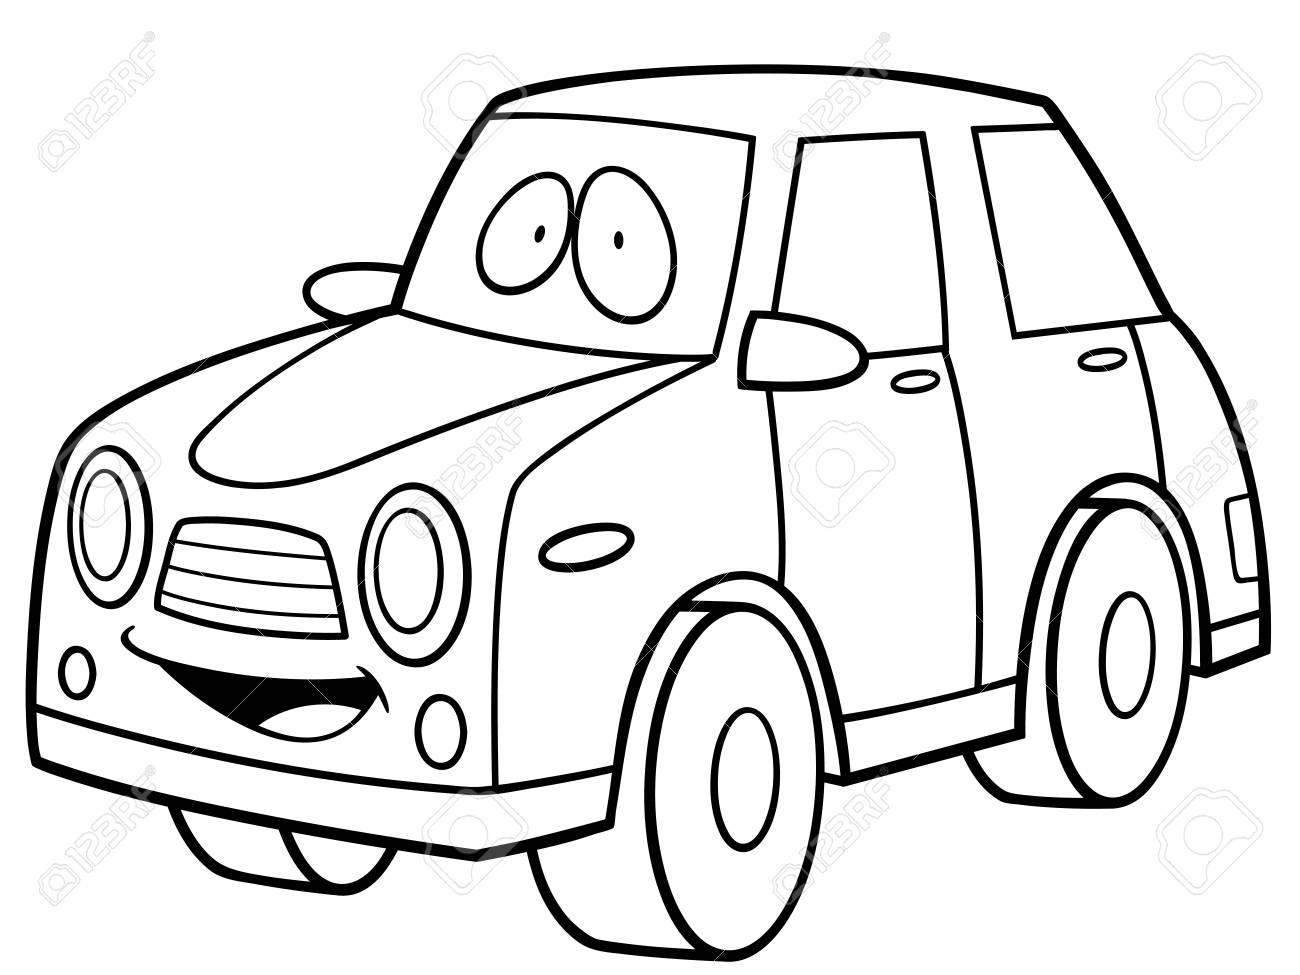 Vector Illustration of Cartoon Car - Coloring book